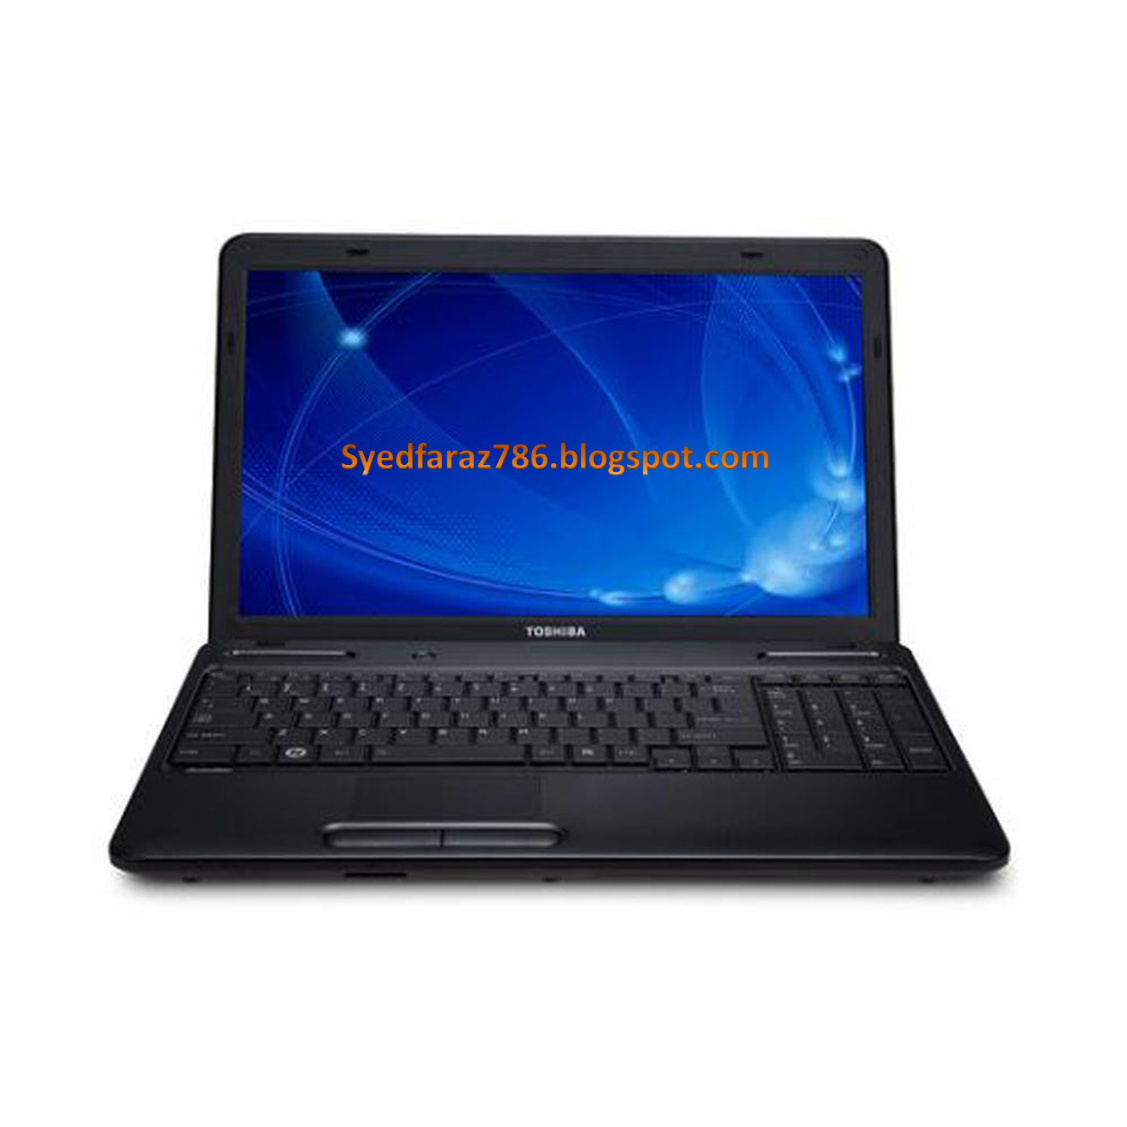 TOSHIBA SATELLITE C850-A669 DRIVER FOR WINDOWS 7